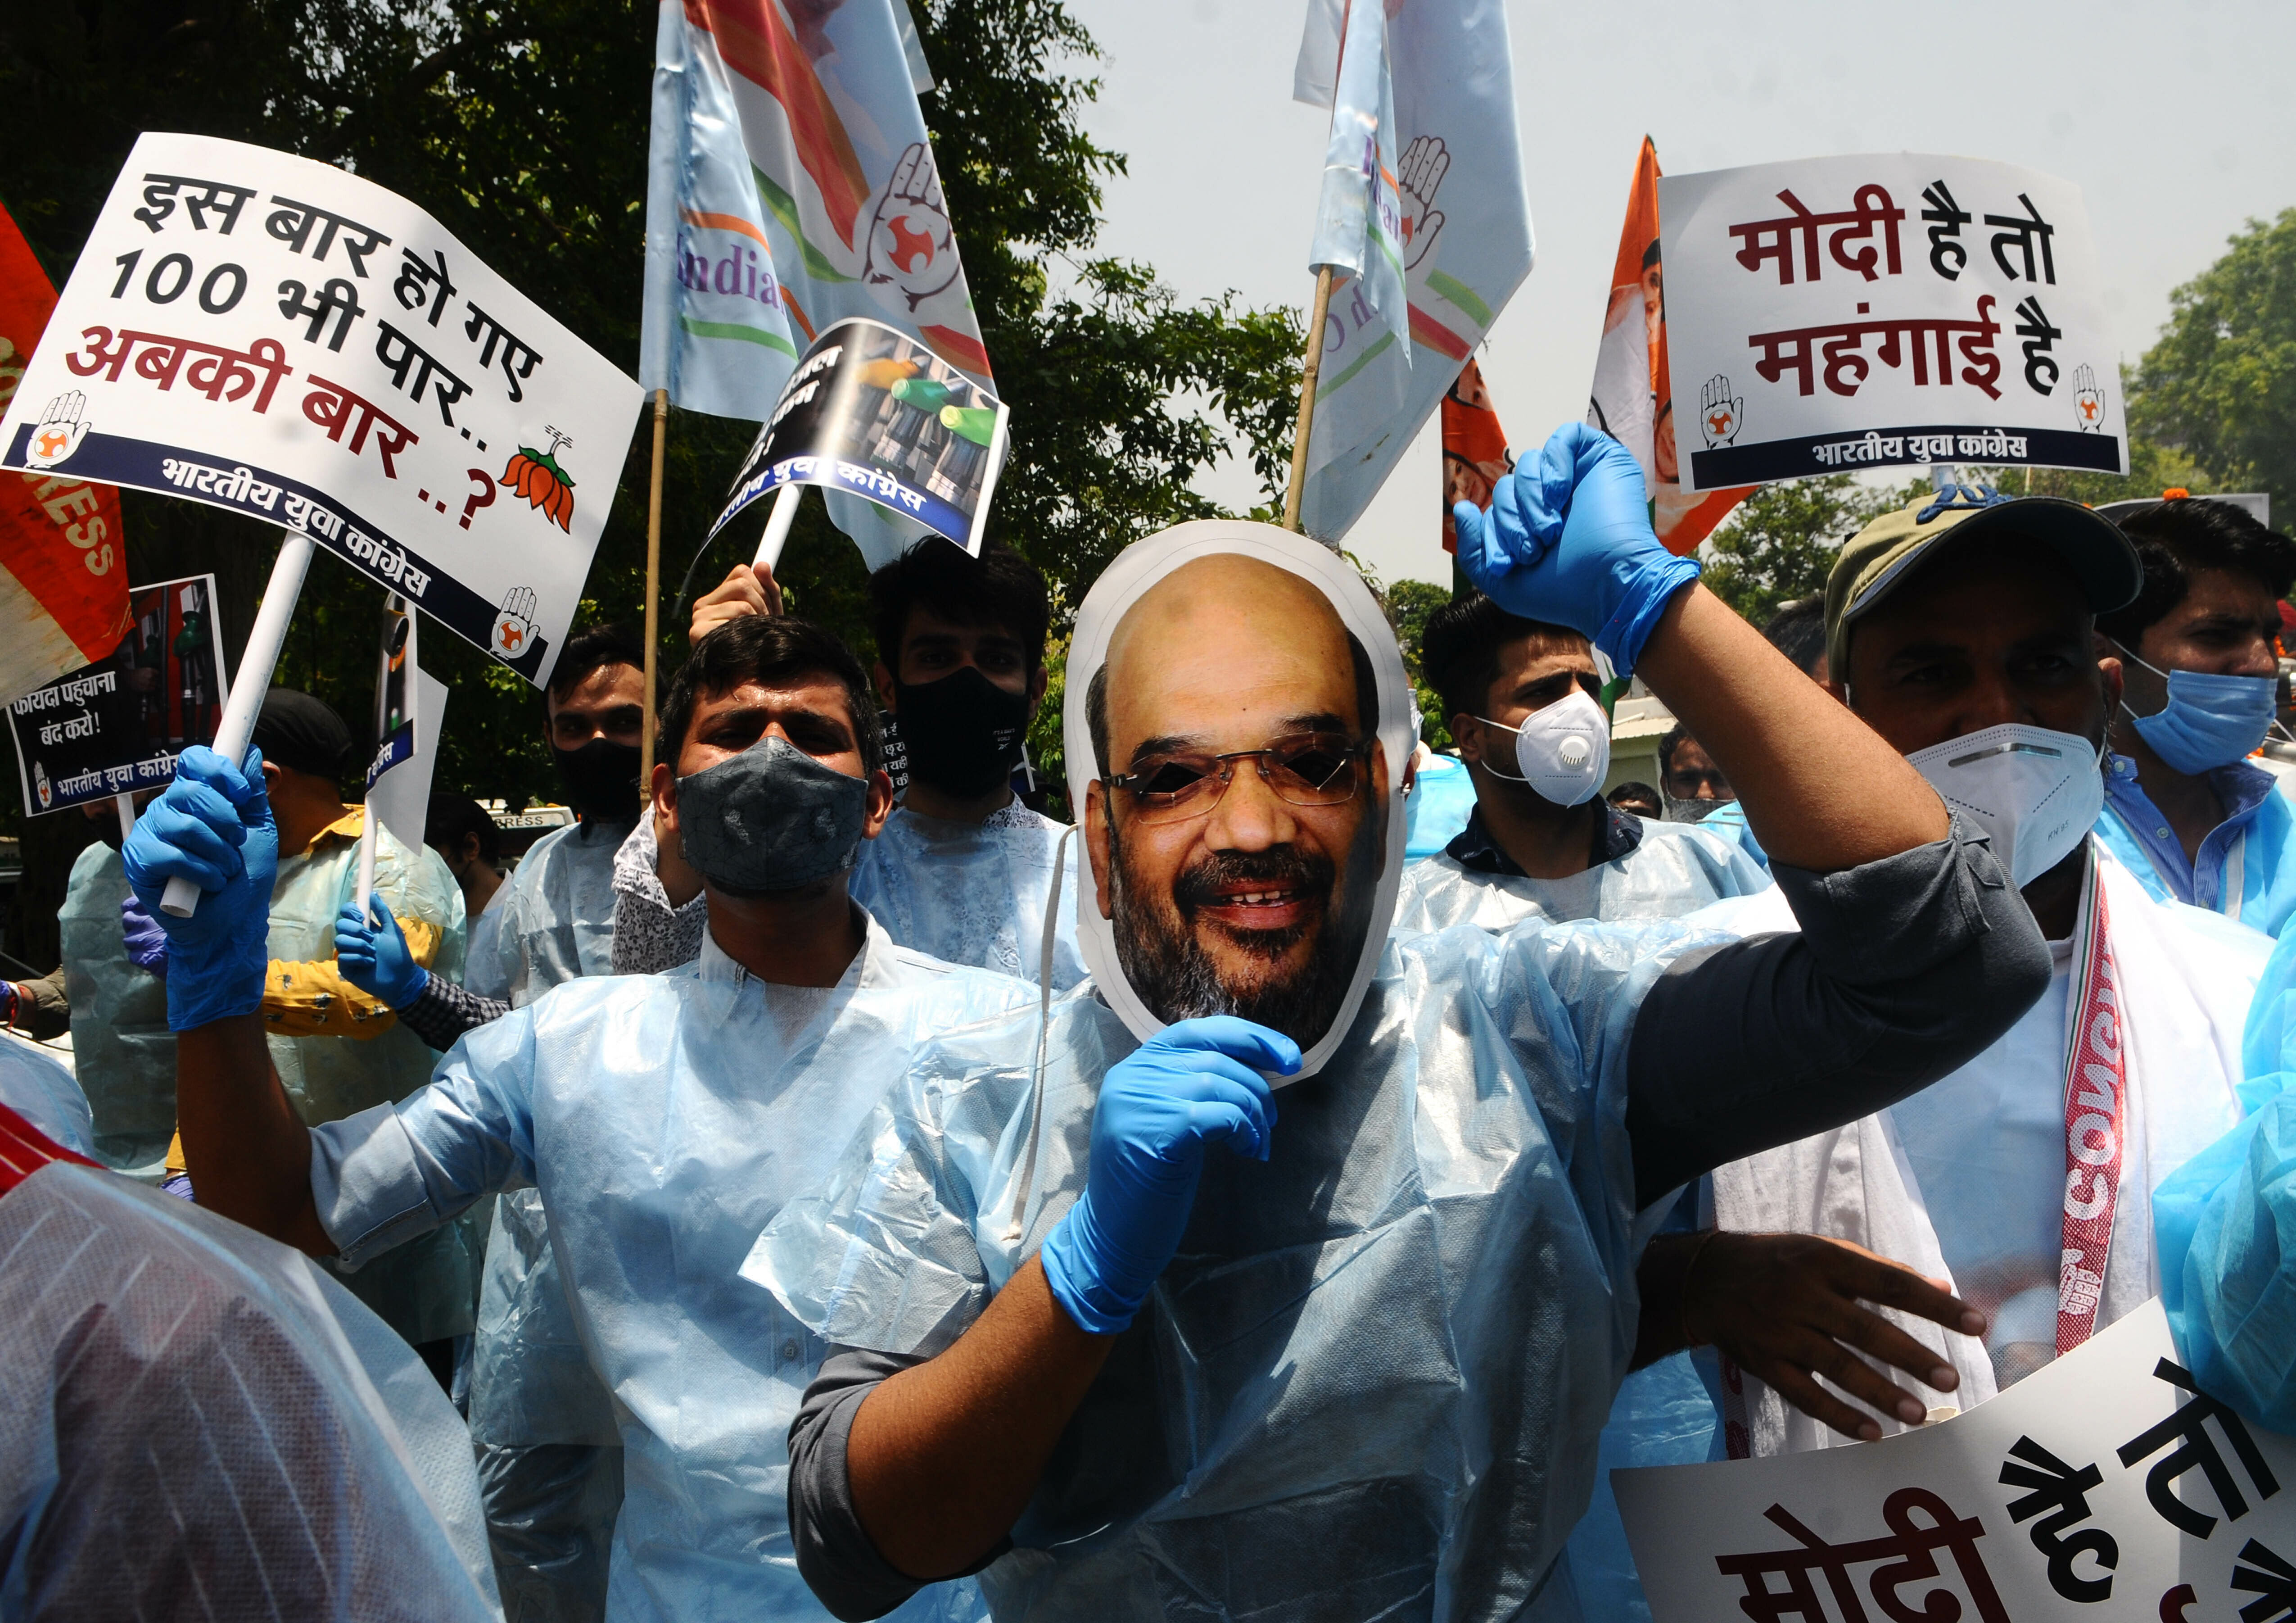 Protest against fuel price hike in New Delhi